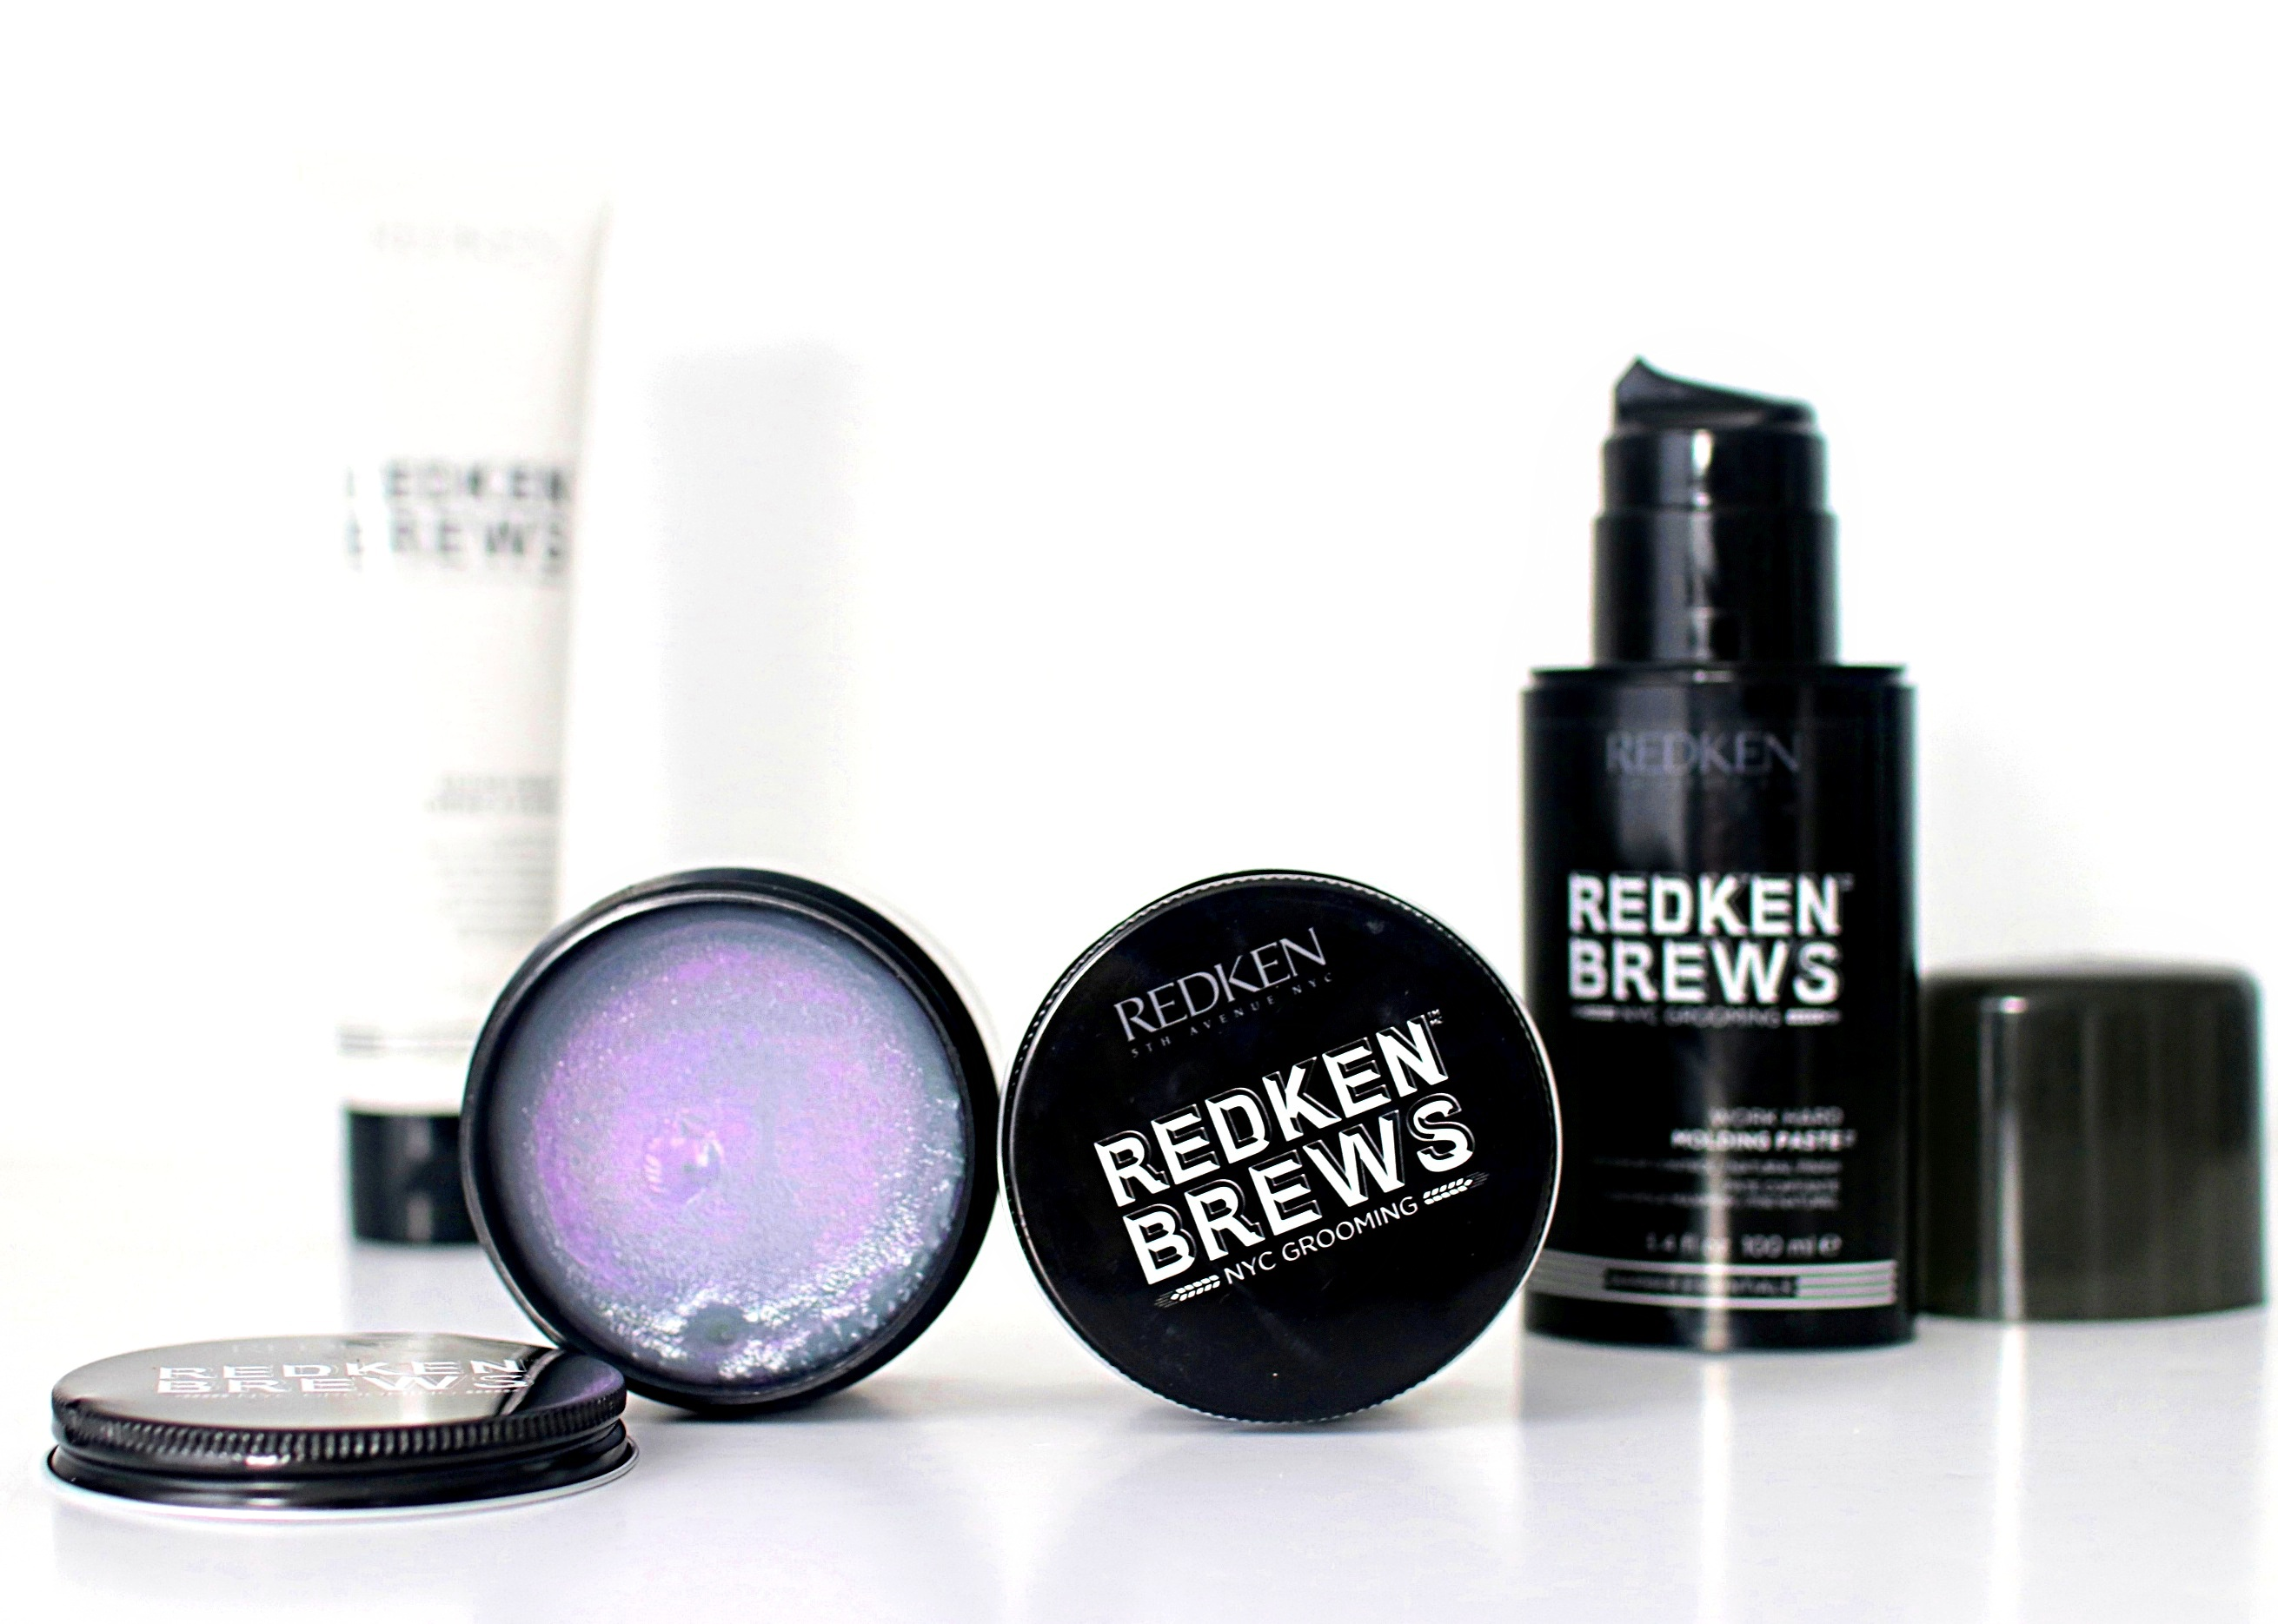 Redken Brews Review